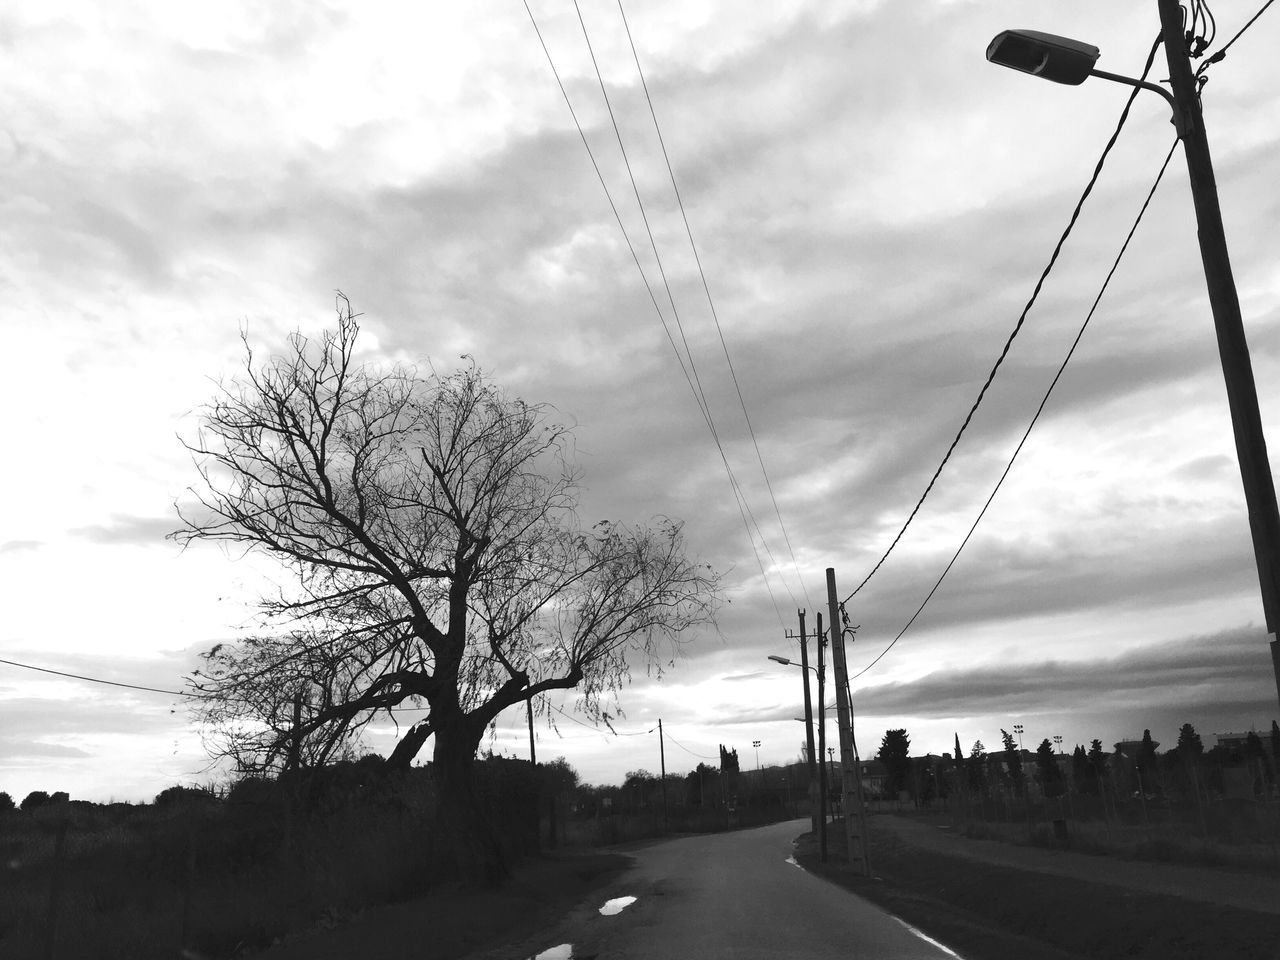 Sky Tree Power Line  Bare Tree Electricity Pylon Cloud - Sky Road Cable No People Outdoors Power Supply Electricity  Day Connection Nature Blackandwhite EyeEm Bnw Eye4photography  EyeEm Gallery